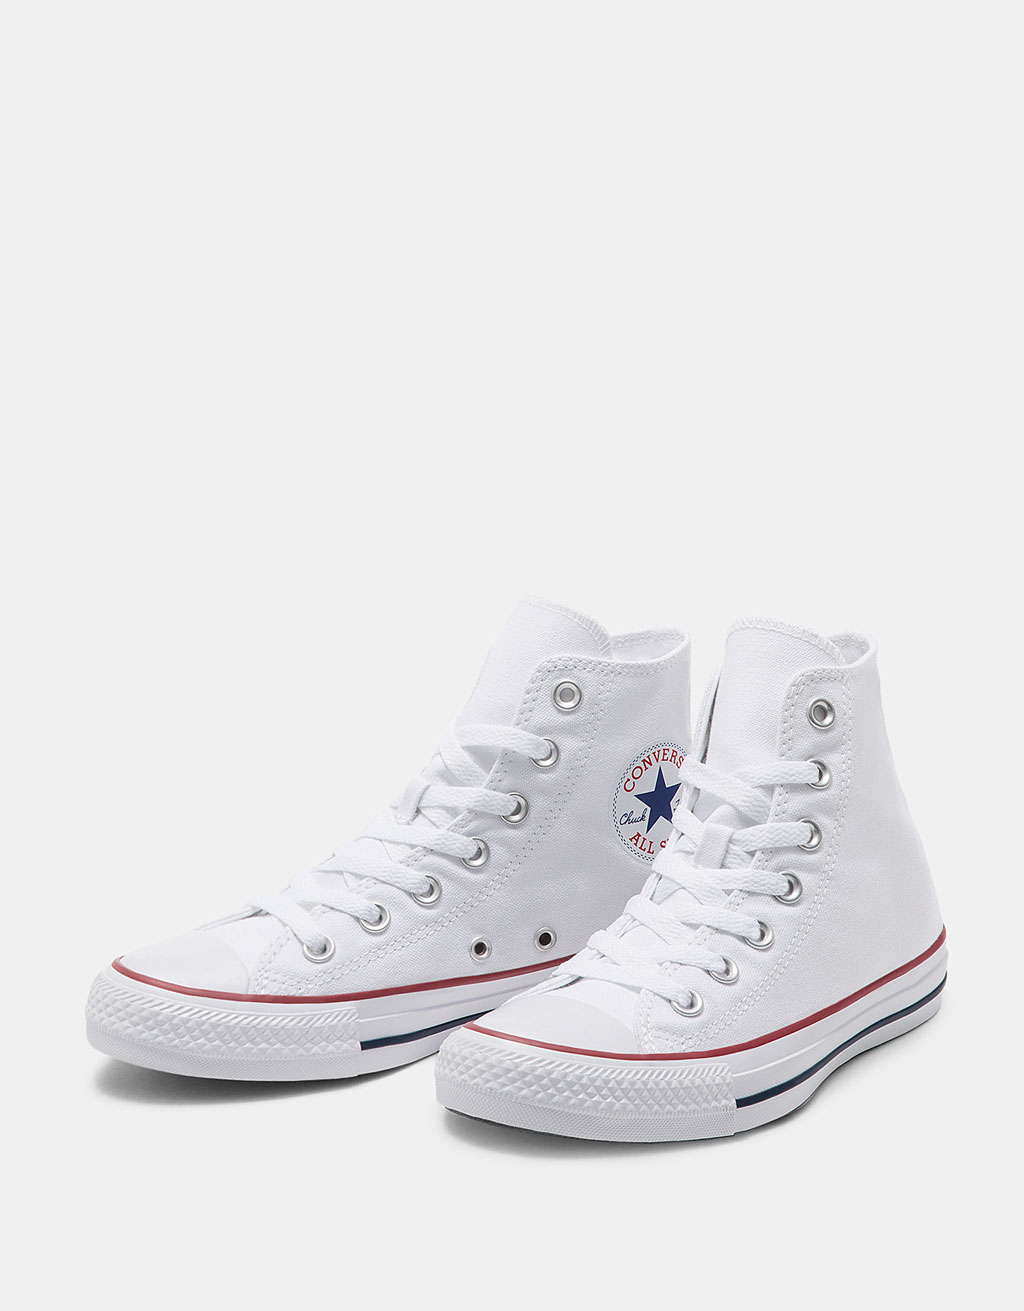 CONVERSE CHUCK TAYLOR ALL STAR high top canvas sneakers